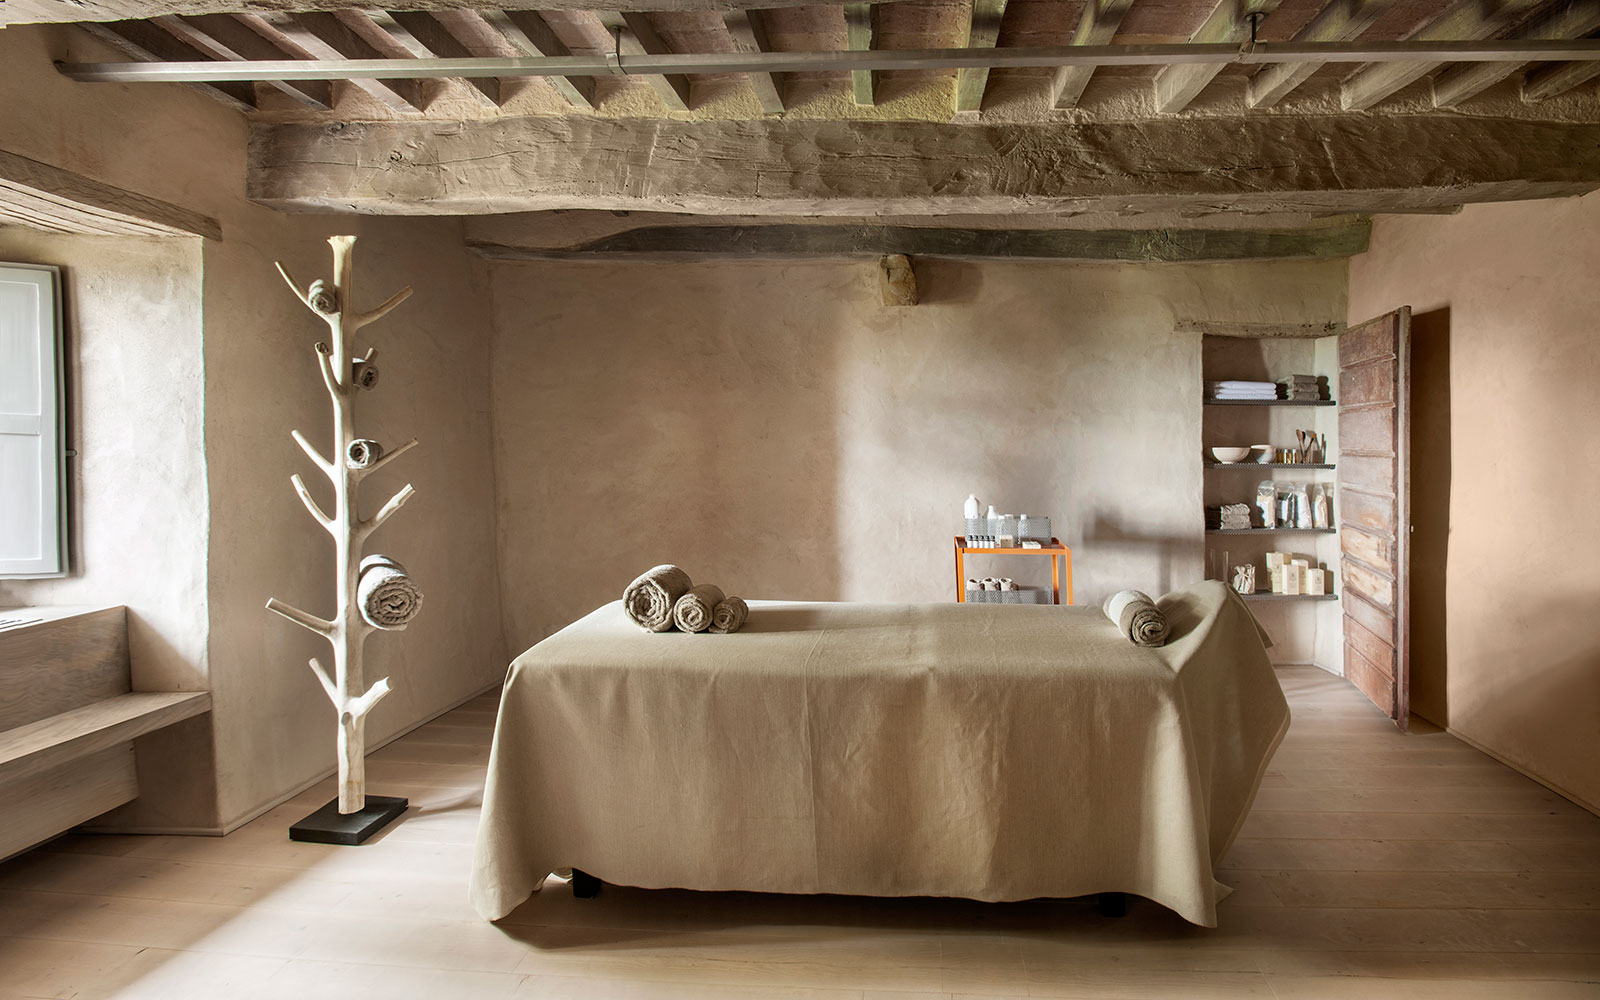 Monteverdi Tuscany's New Spa